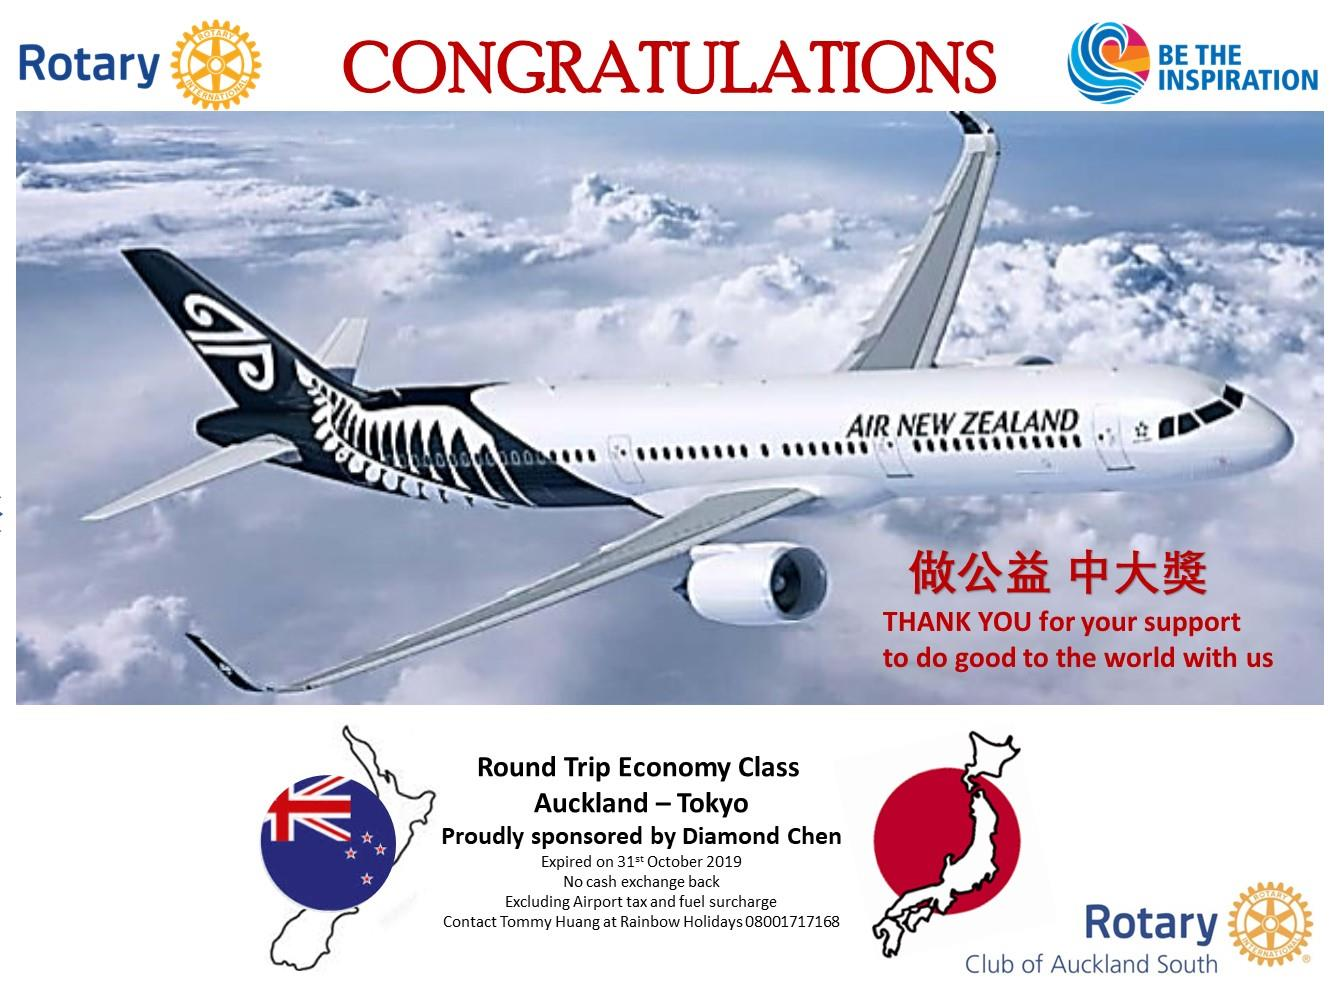 20190423 Raffle Prize Draw | The Rotary Club of Auckland